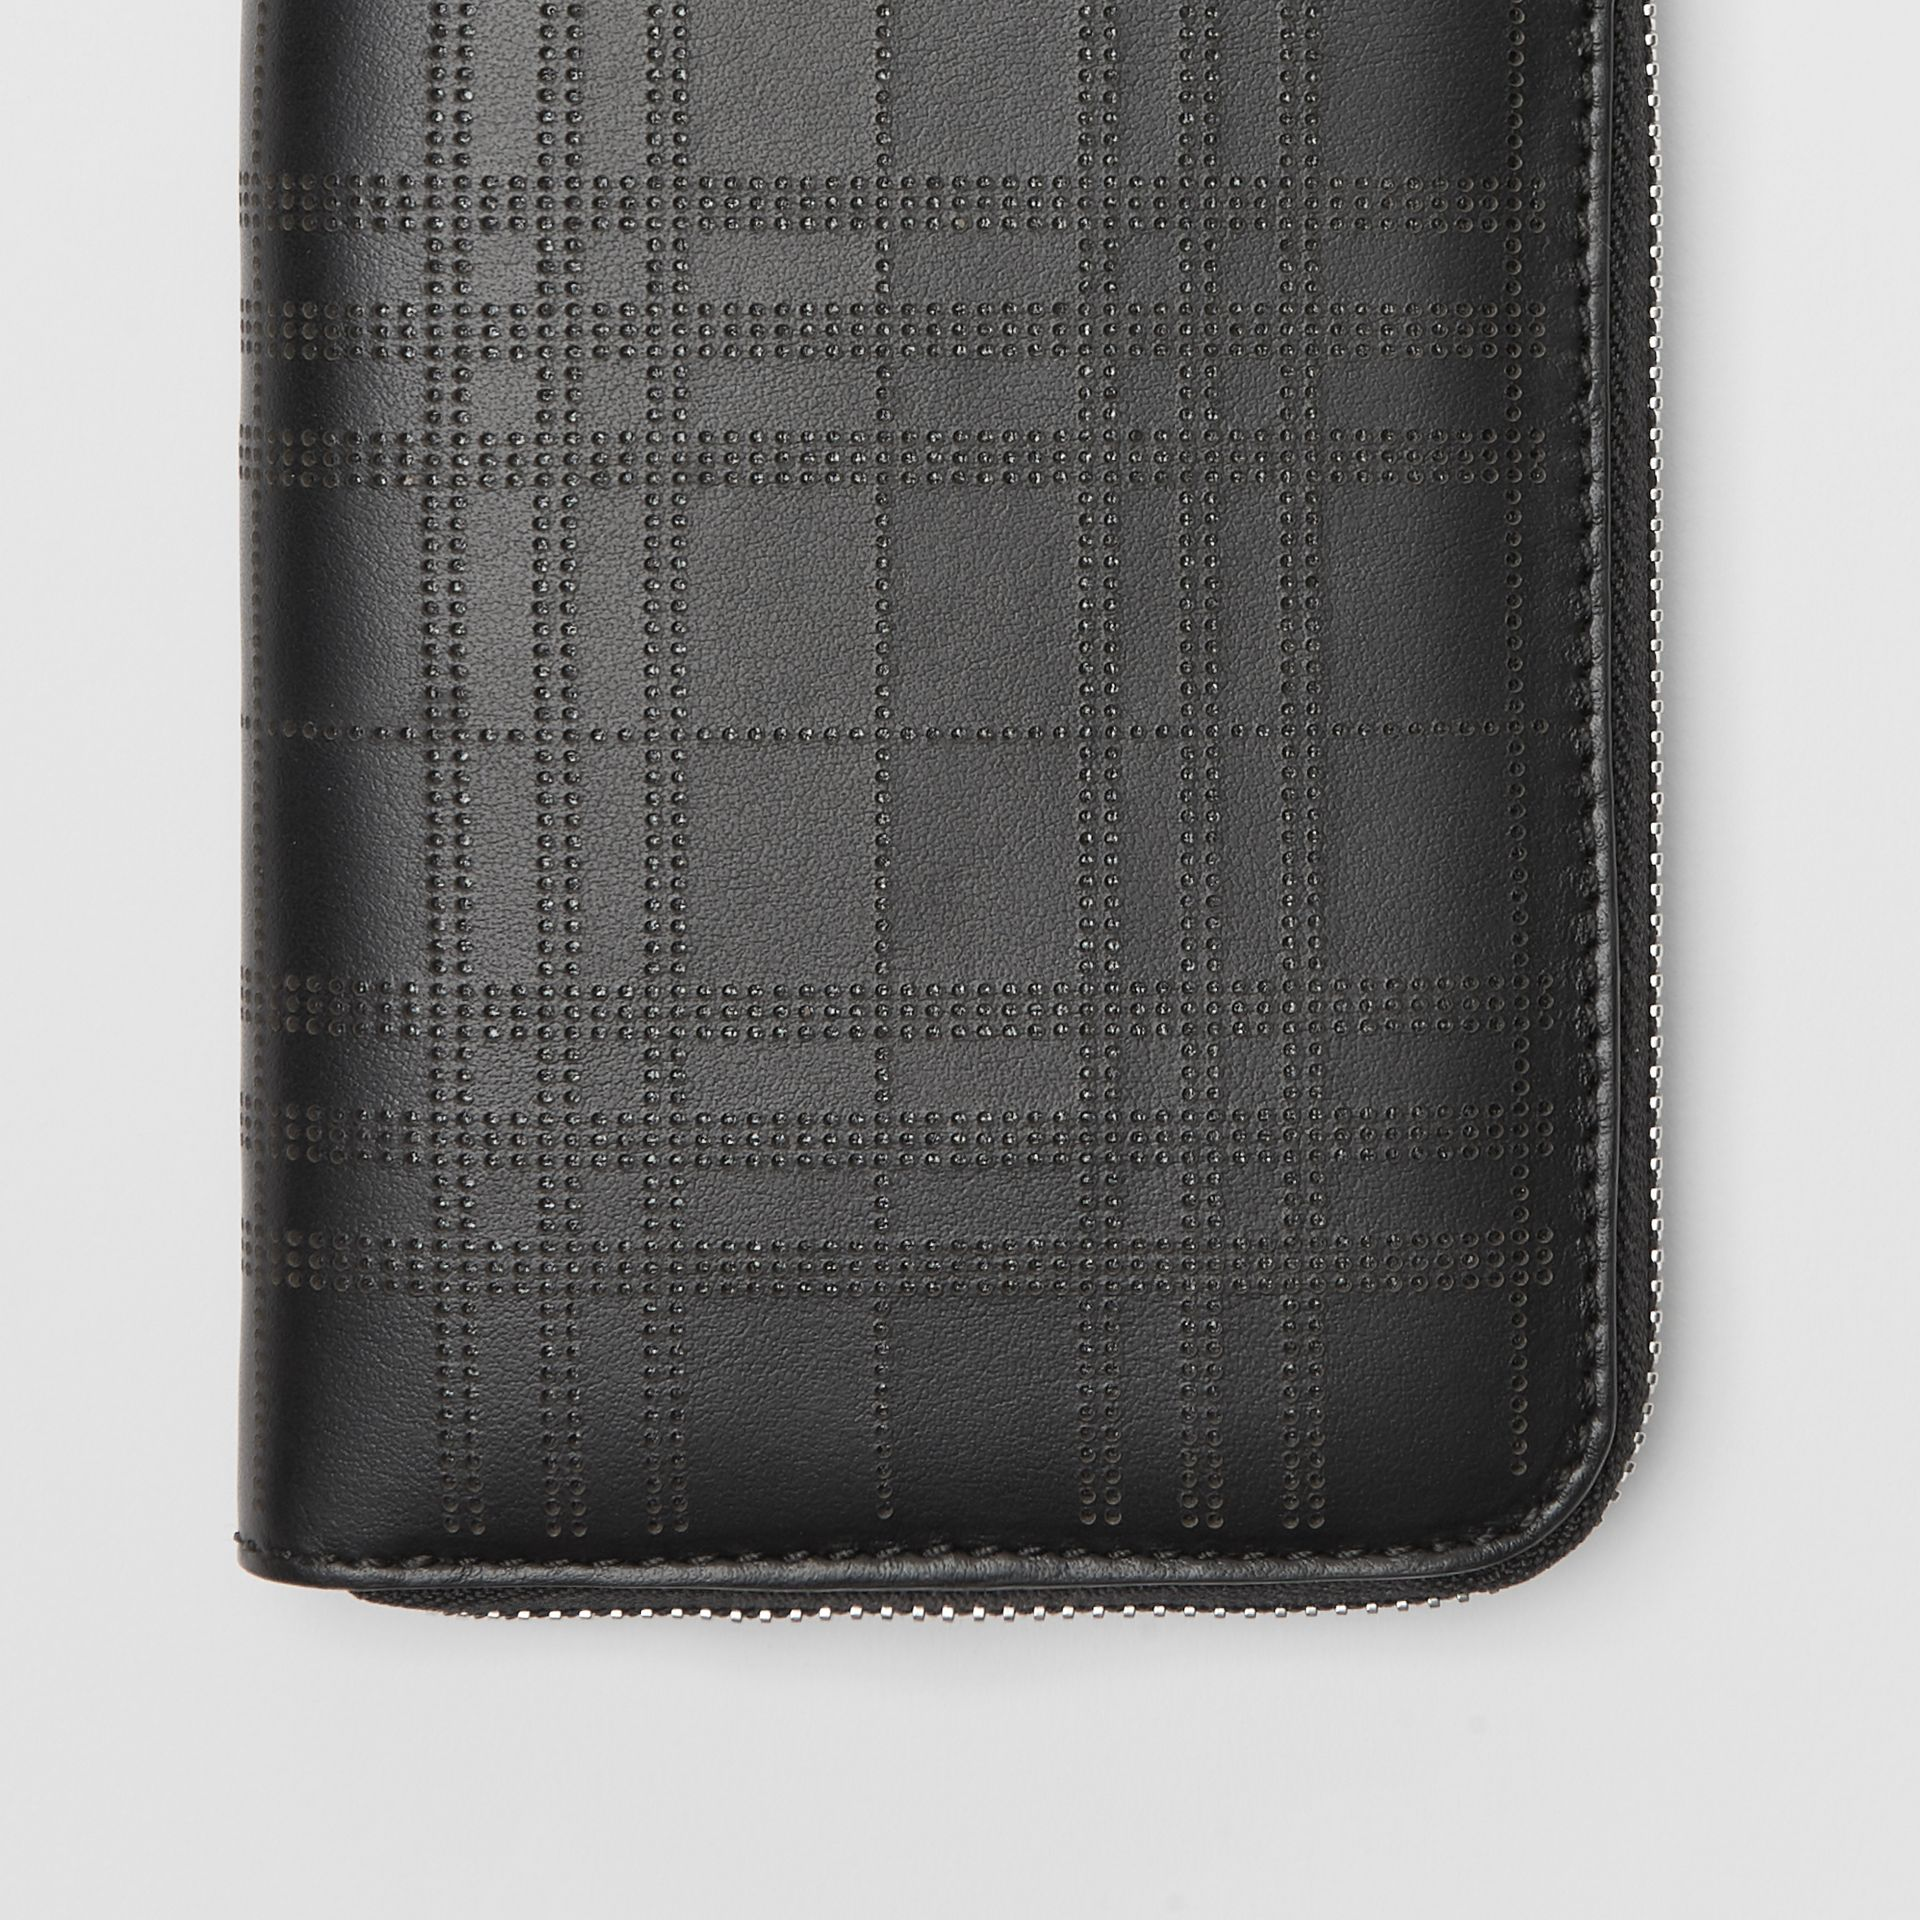 Perforated Check Leather Ziparound Wallet in Black - Men | Burberry - gallery image 1